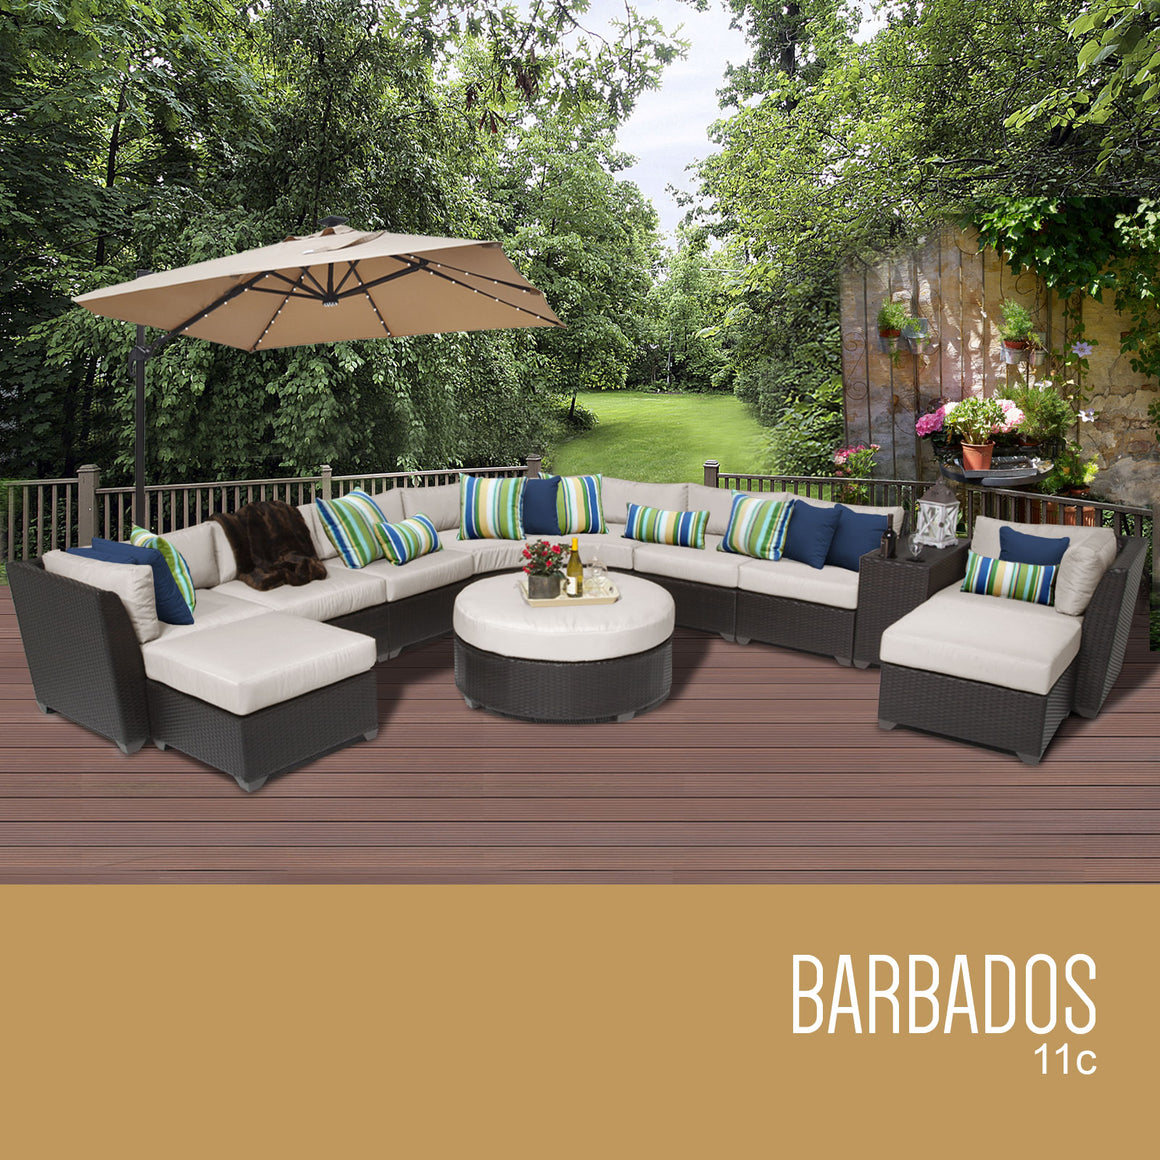 Barbados 11 Piece Outdoor Wicker Patio Furniture Set 11c , TK Classics- grayburd